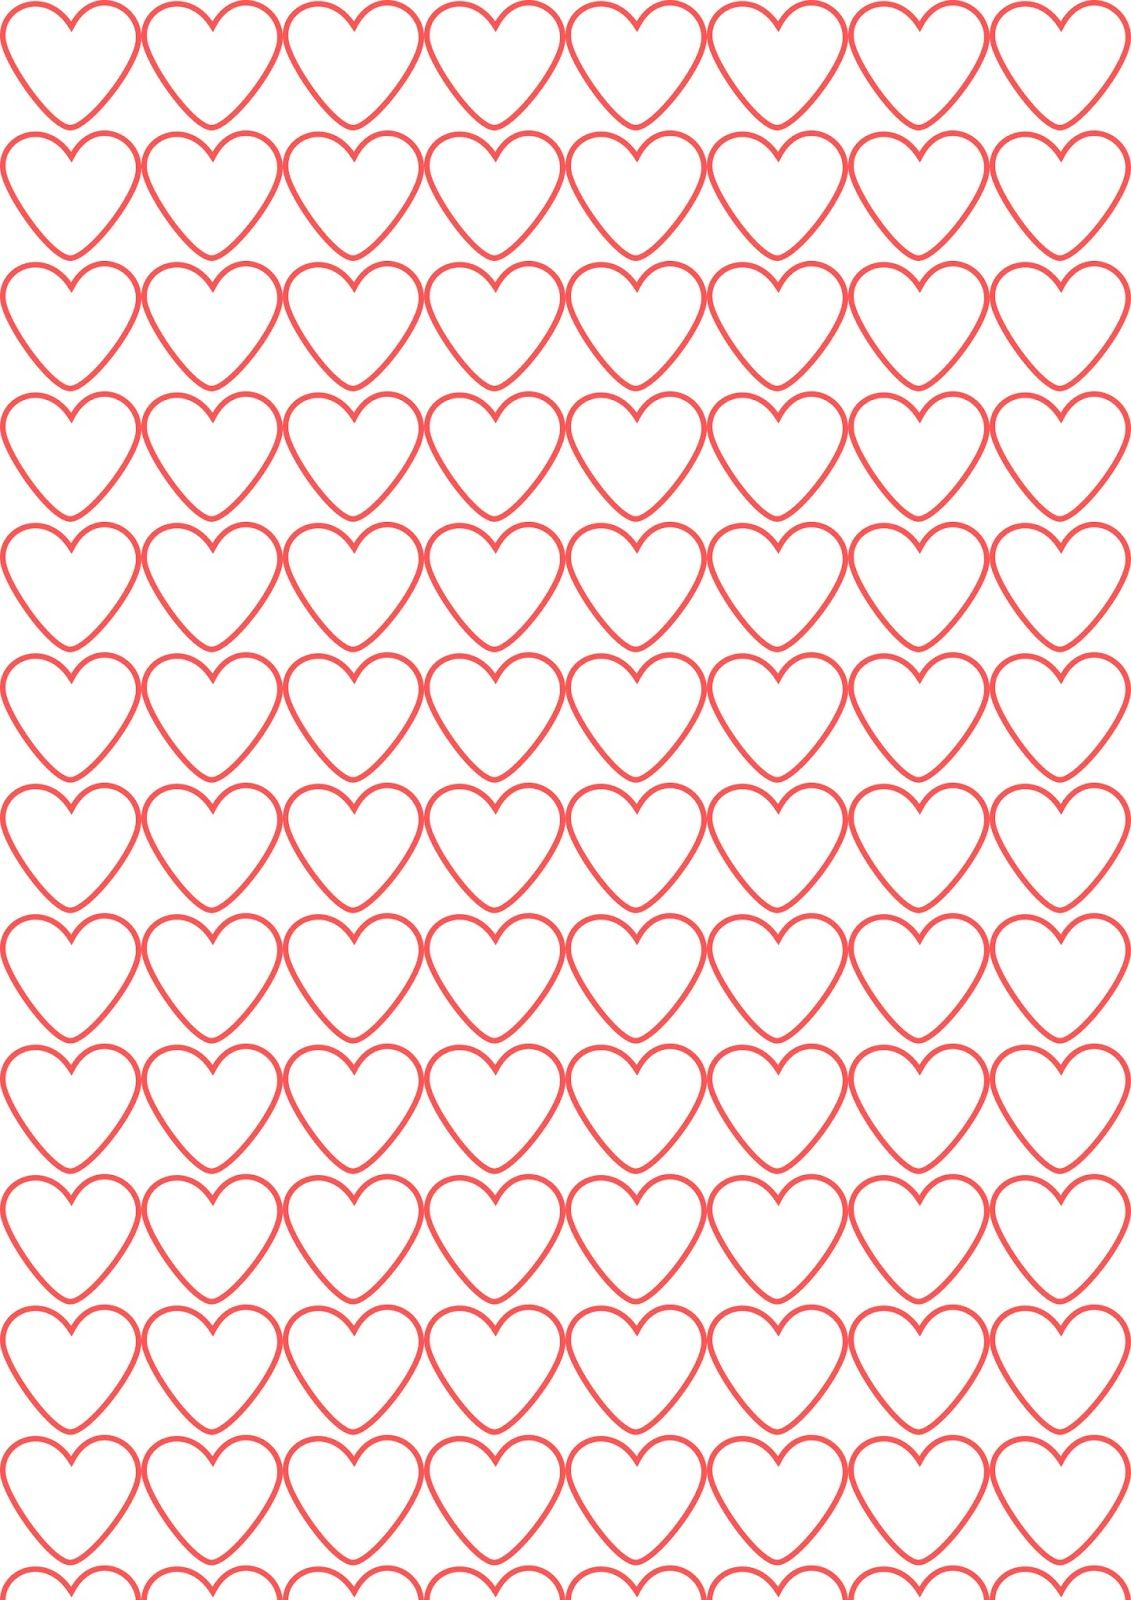 FREE printable heart pattern paper   #Valentines